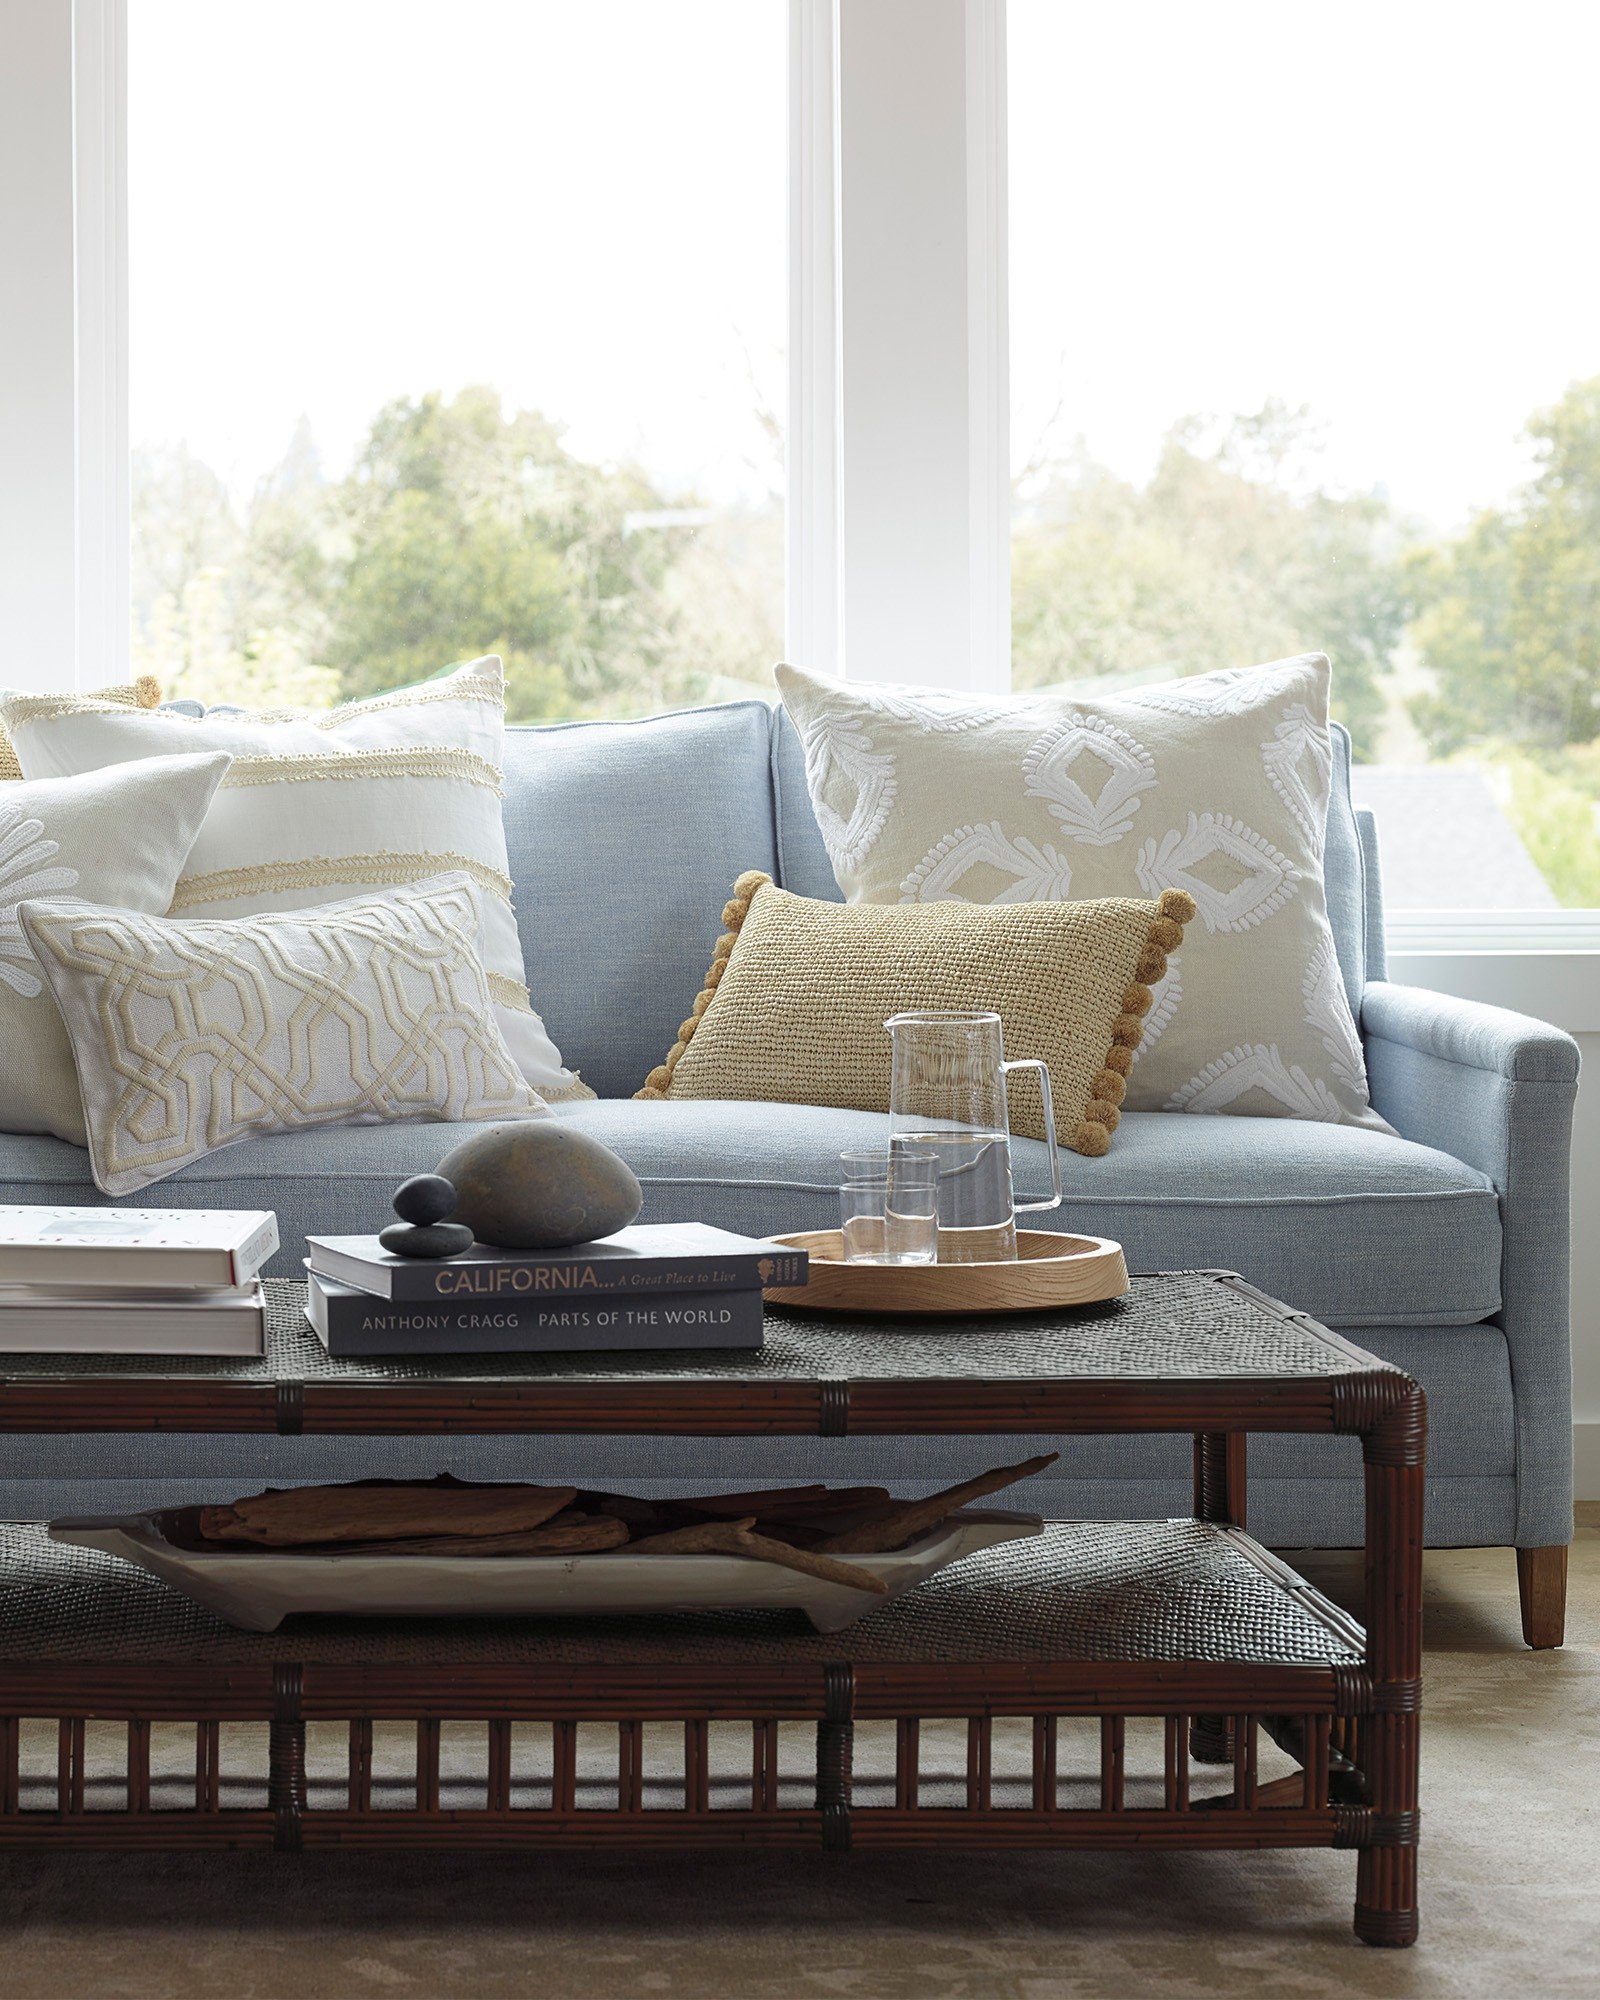 Source Furniture Brampton 15 Favorite Classic Sofas Some Of My Top Sources Laurel Home